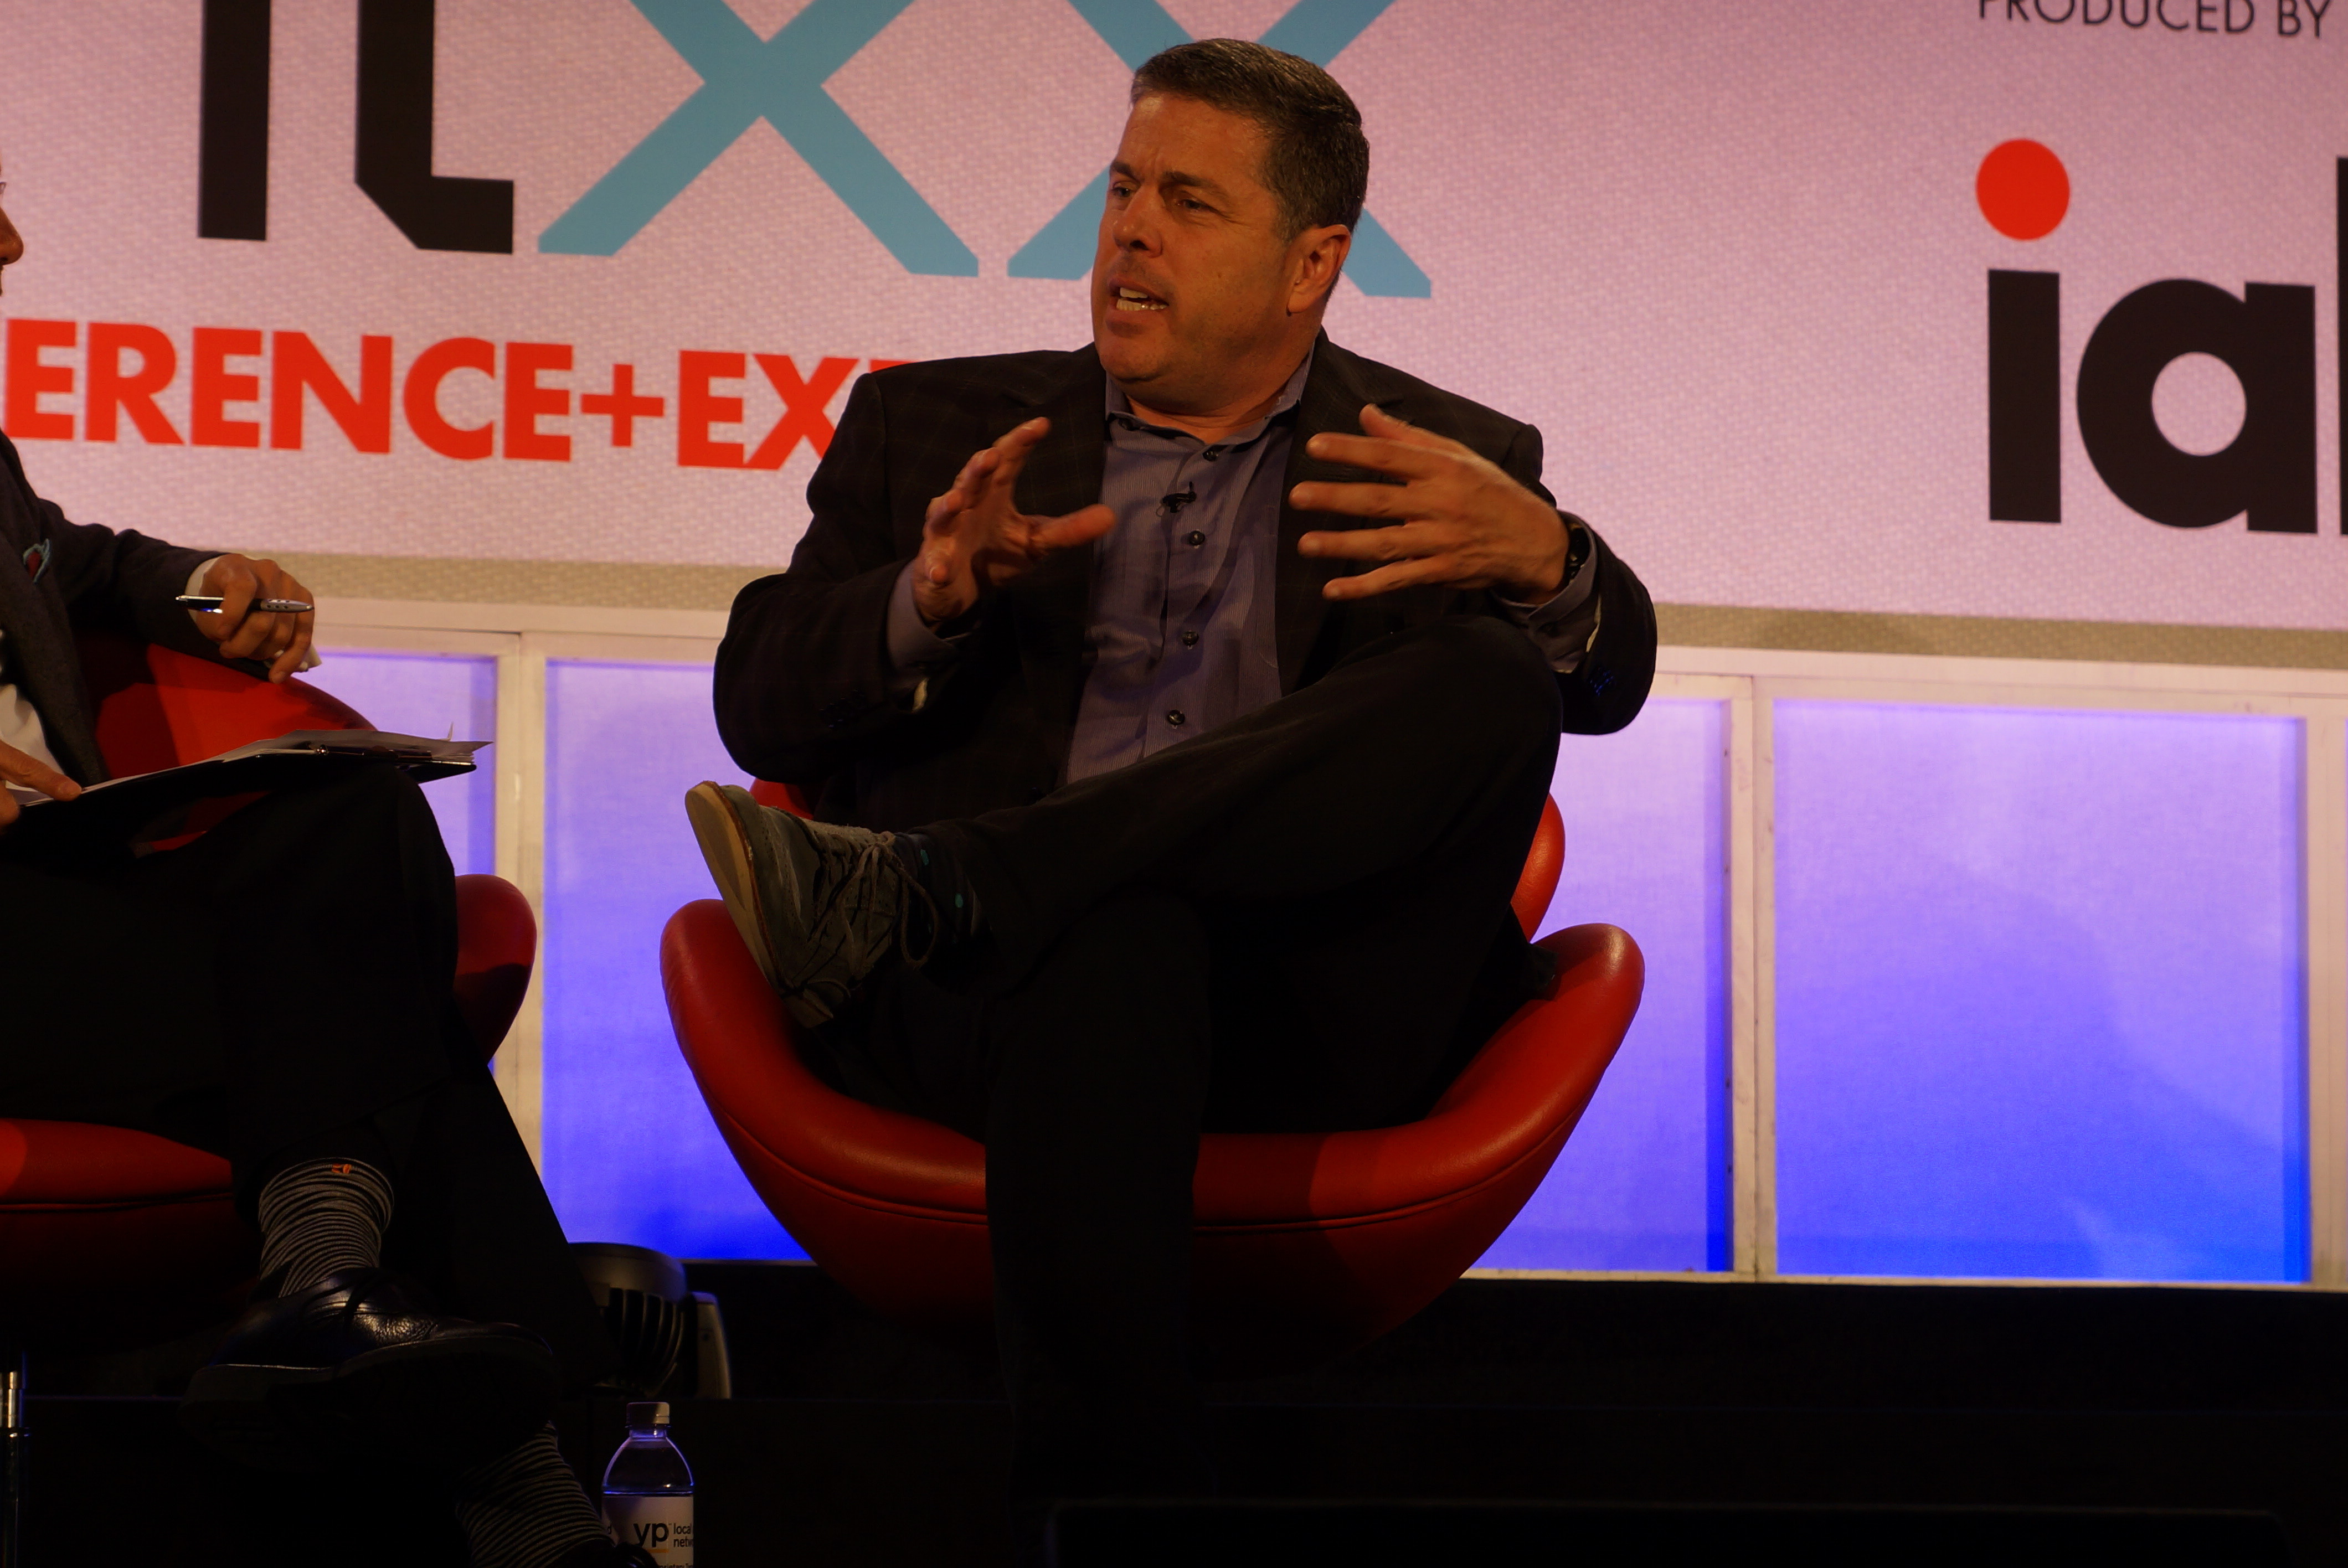 Hulu CEO Andy Forssell on a stage